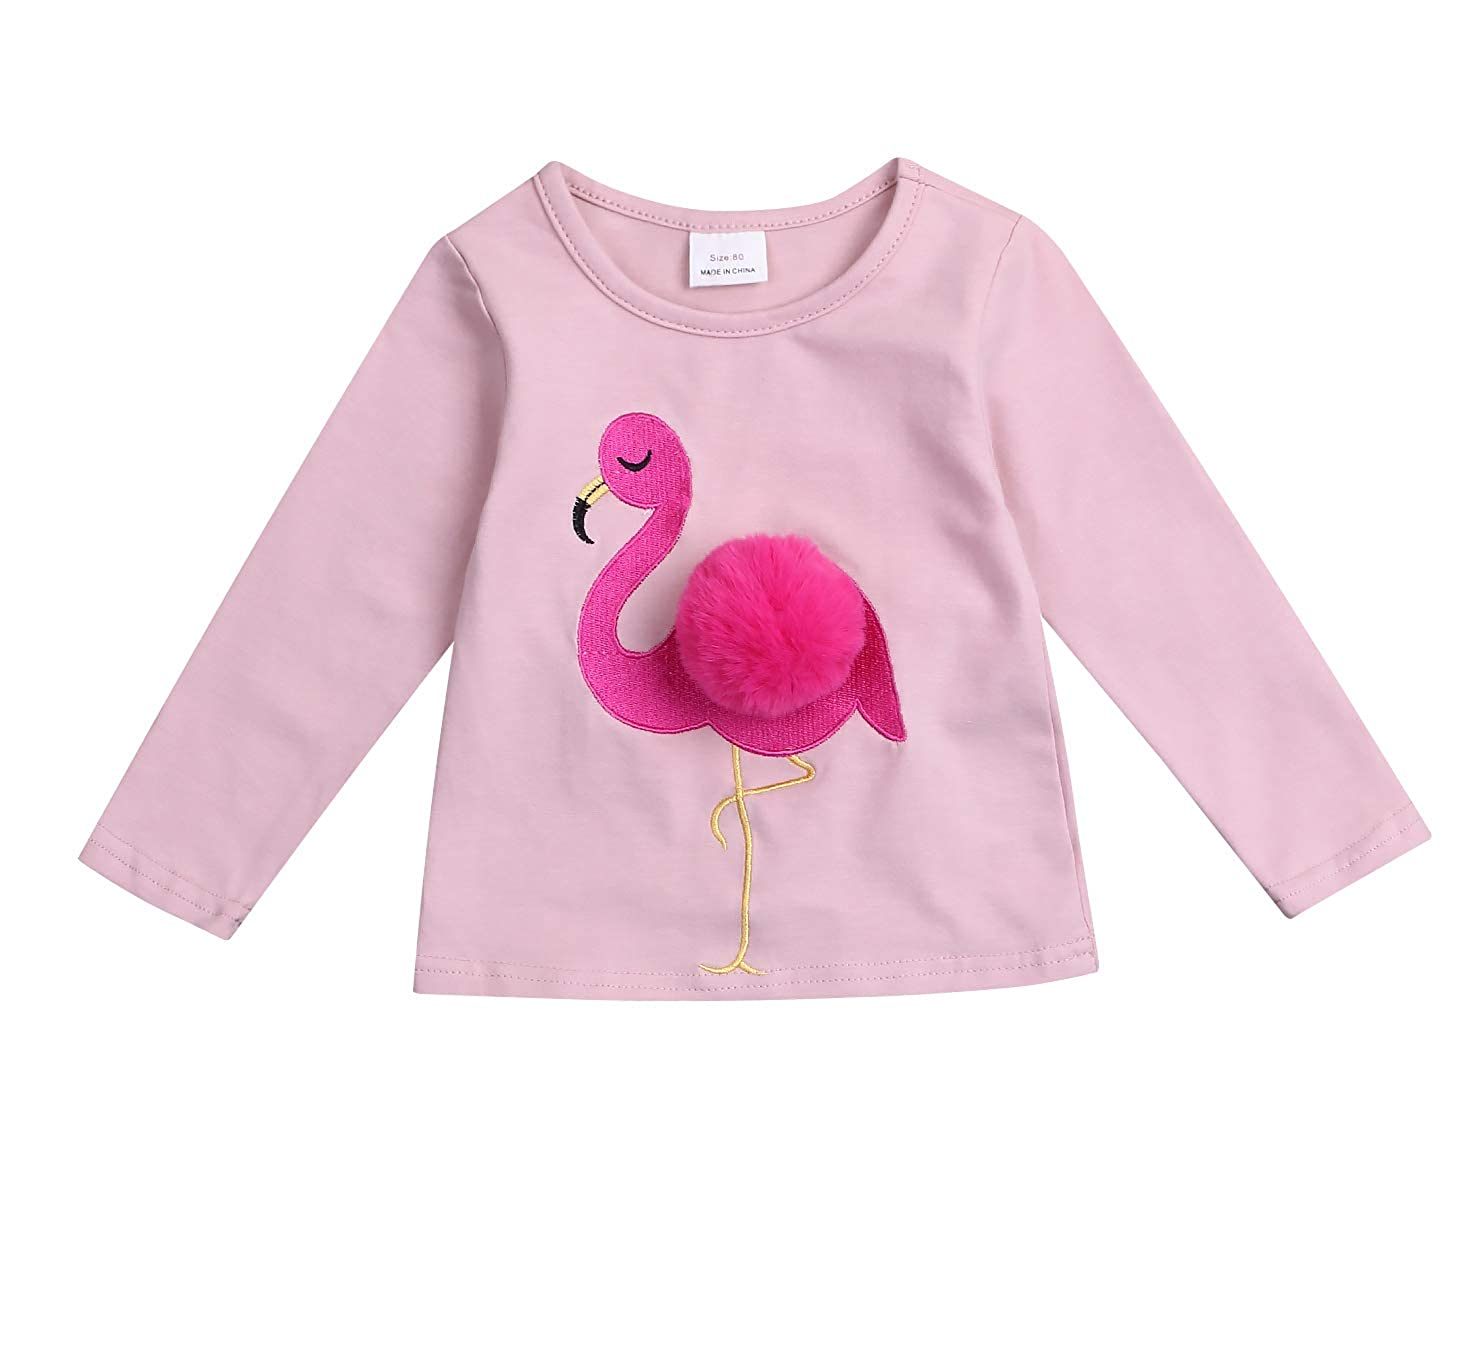 Younger star Baby Girl Pink Flamingo Tops Long Sleeve Cotton T-Shirts Kids Cute Tee Tops